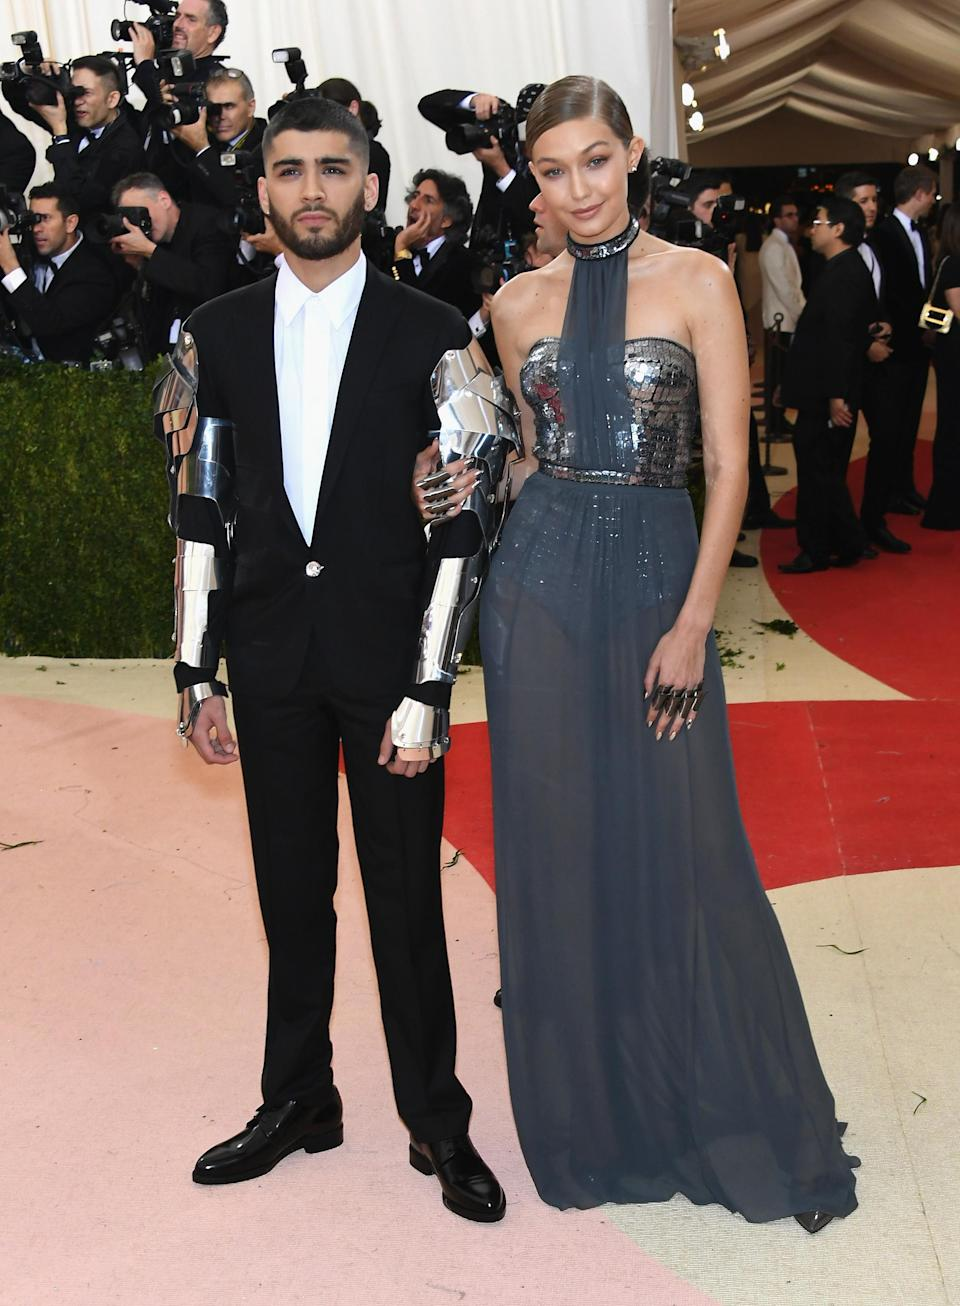 <p>On May 2 2016, Gigi Hadid and former boyfriend Zayn Malik made their red carpet debut at the star-studded Met Gala ceremony. In keeping with the theme of 'Manus x Machina: Fashion In An Age Of Technology', the supermodel donned a custom Tommy Hilfiger gown while Zayn opted for bionic-inspired arms. But the most expensive aspect to their look? Gigi's manicure.<br><br>According to KISS Nails, the manicure they gave the 23-year-old cost a grand total of £1,745. Her nail artist, Mary Soul, added three crystals beneath each nail. Now that's what you call dedication. <em>[Photo: Getty]</em> </p>